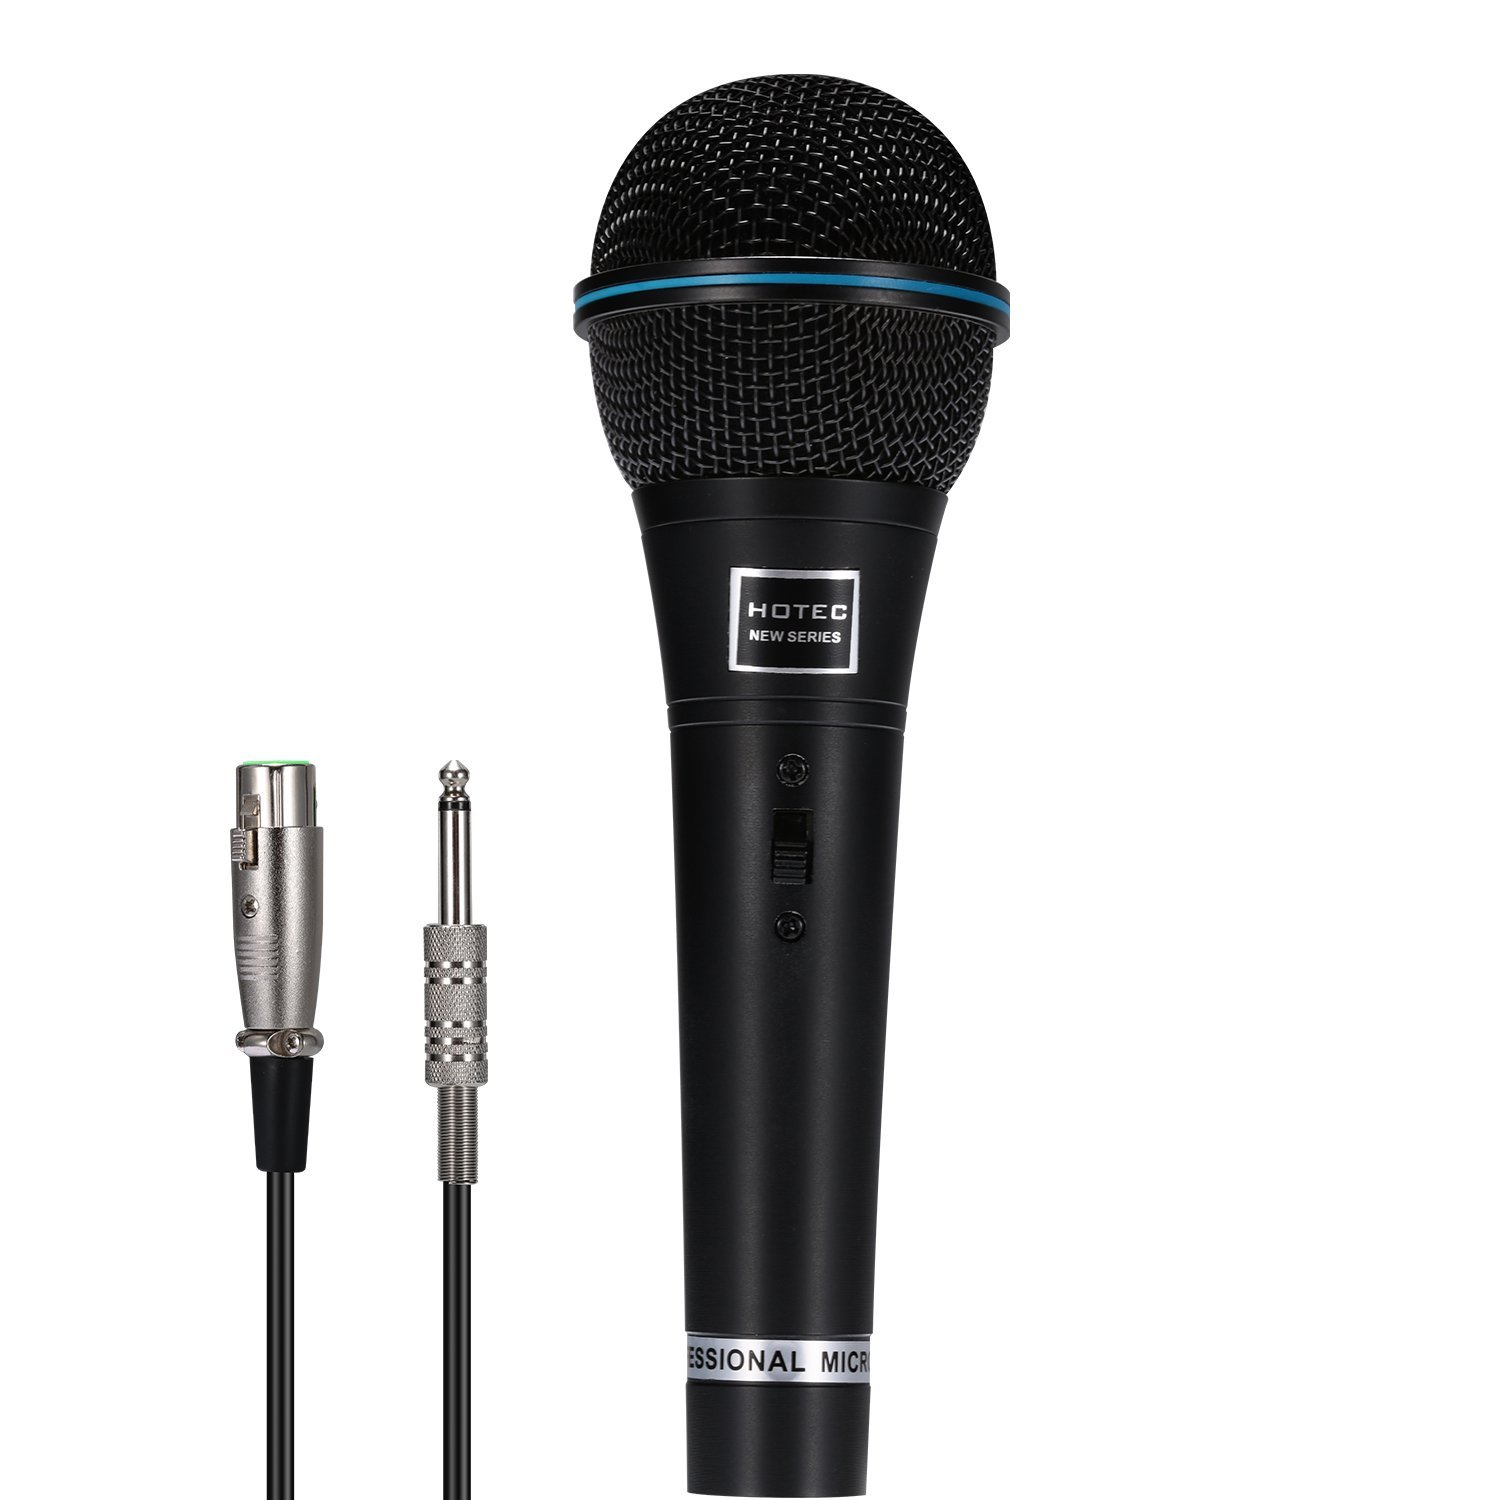 Hotec Professional Vocal Dynamic Handheld Microphone with 19ft Detachable XLR Cable and ON/OFF Switch (Metal Black)